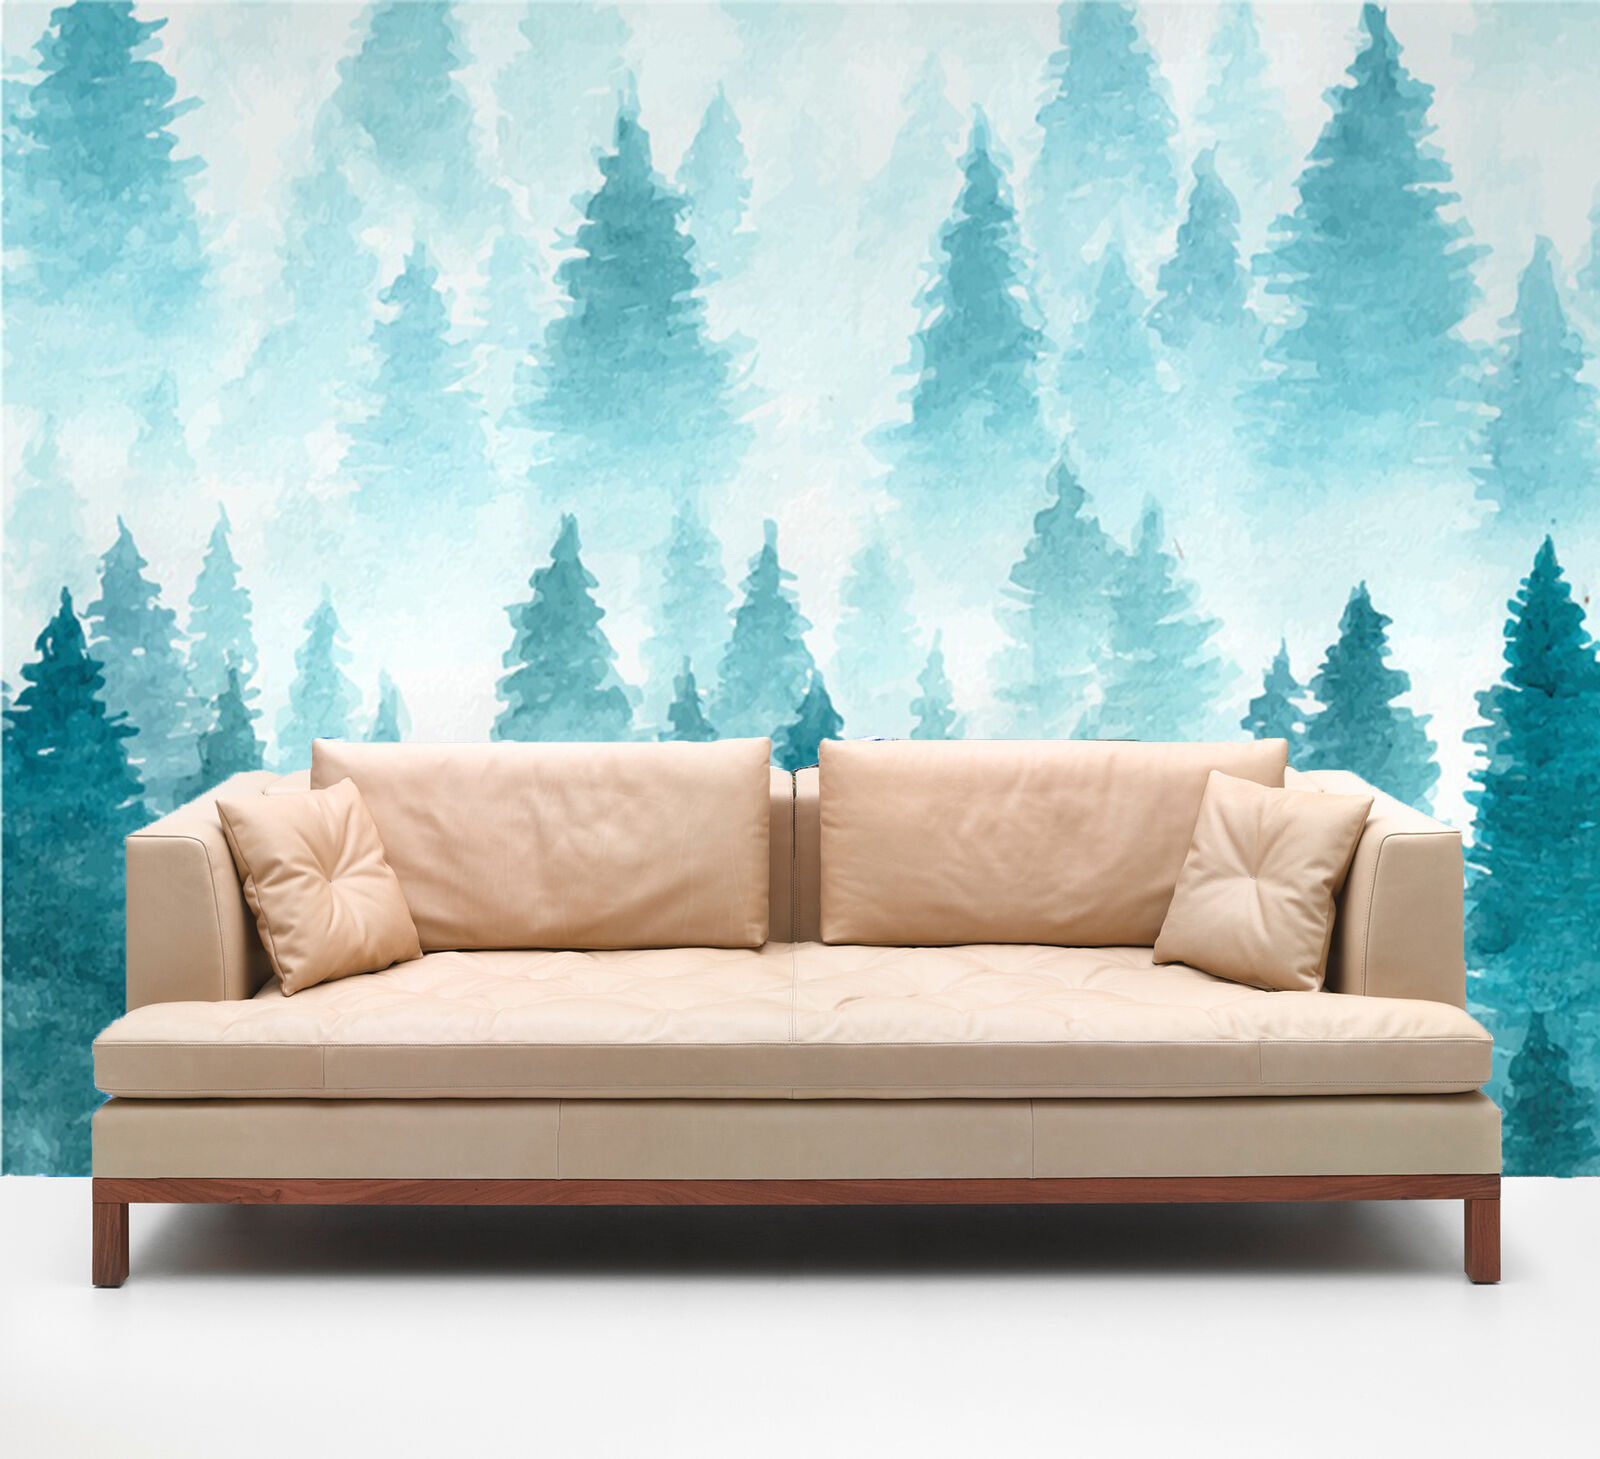 3D WaterFarbe Trees 824 WallPaper Murals Wall Print Decal Wall Deco AJ WALLPAPER